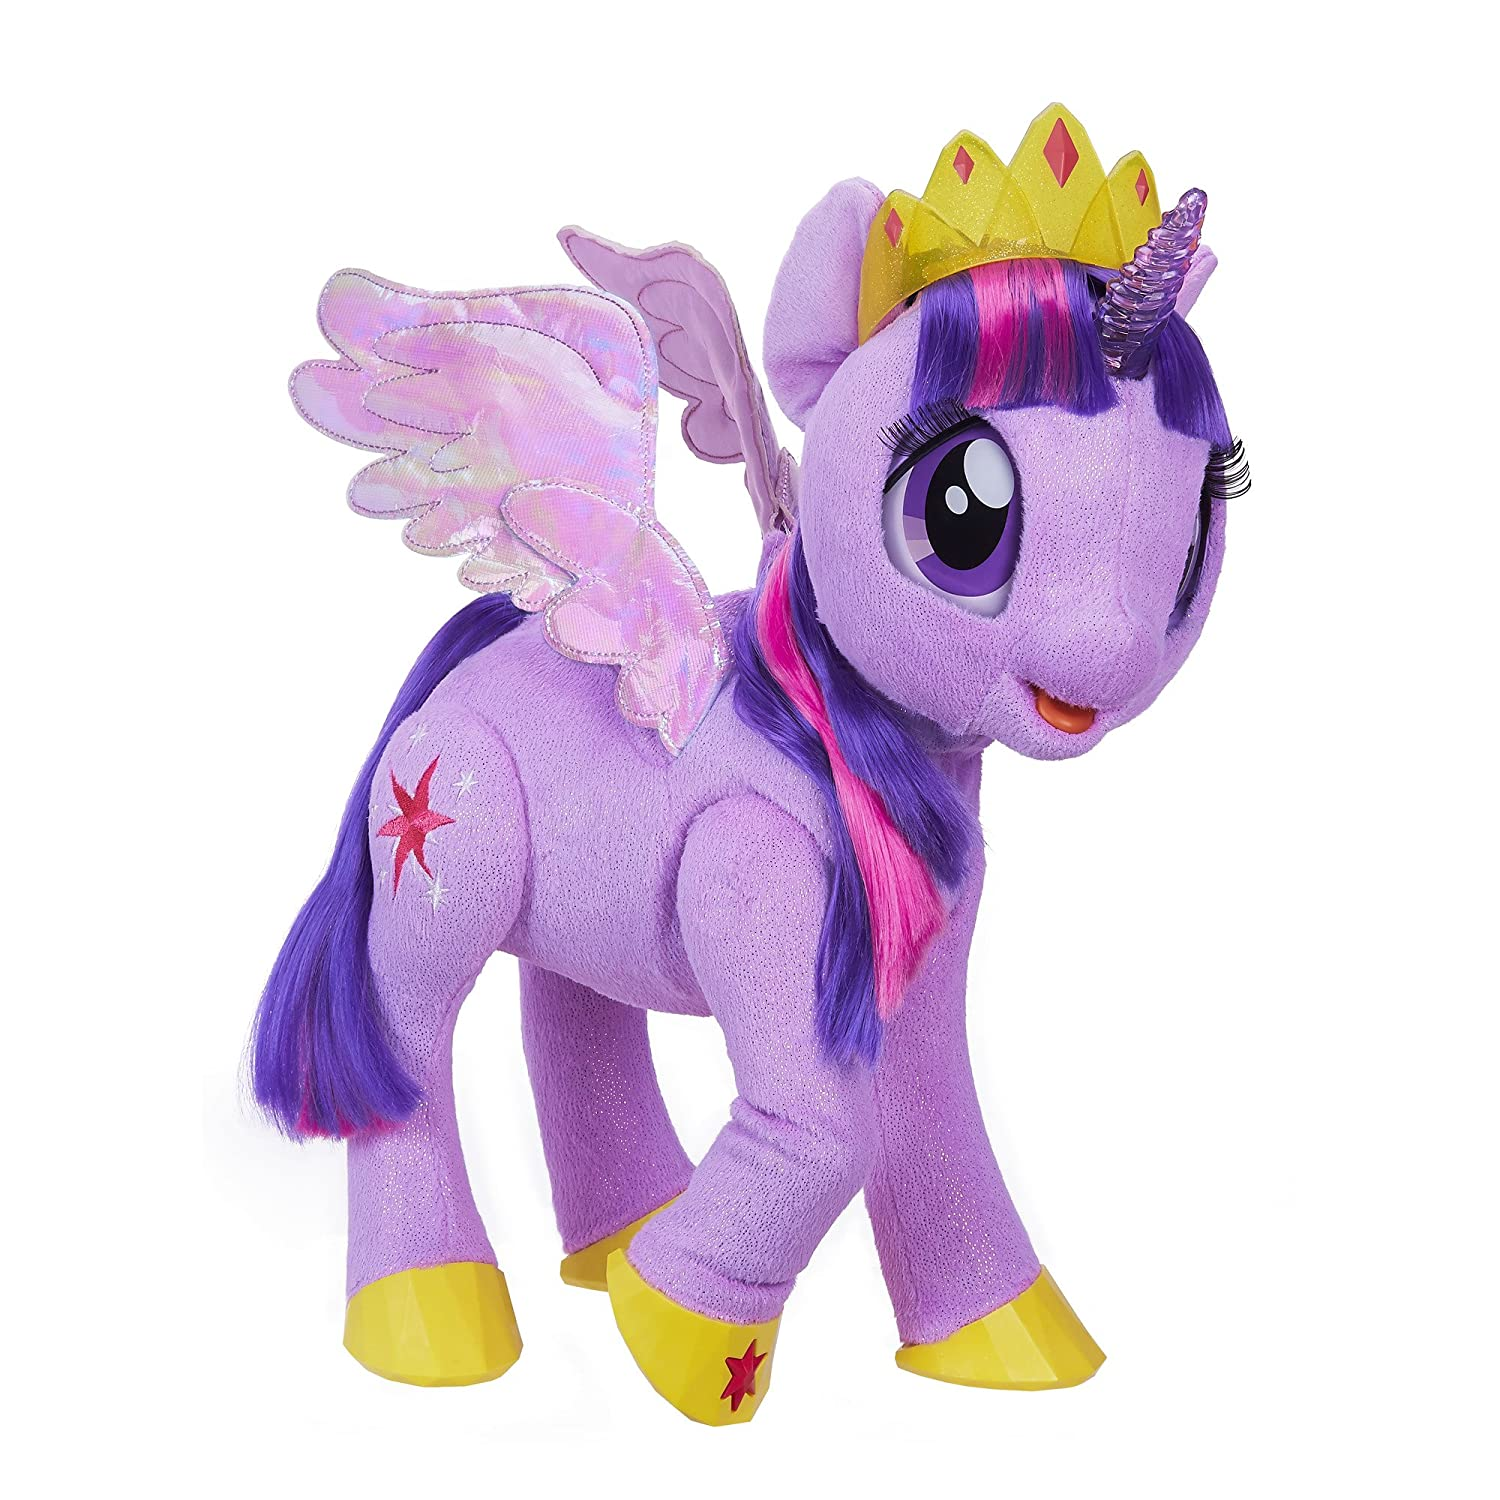 You can buy the My Magical Princess Twilight Sparkle here